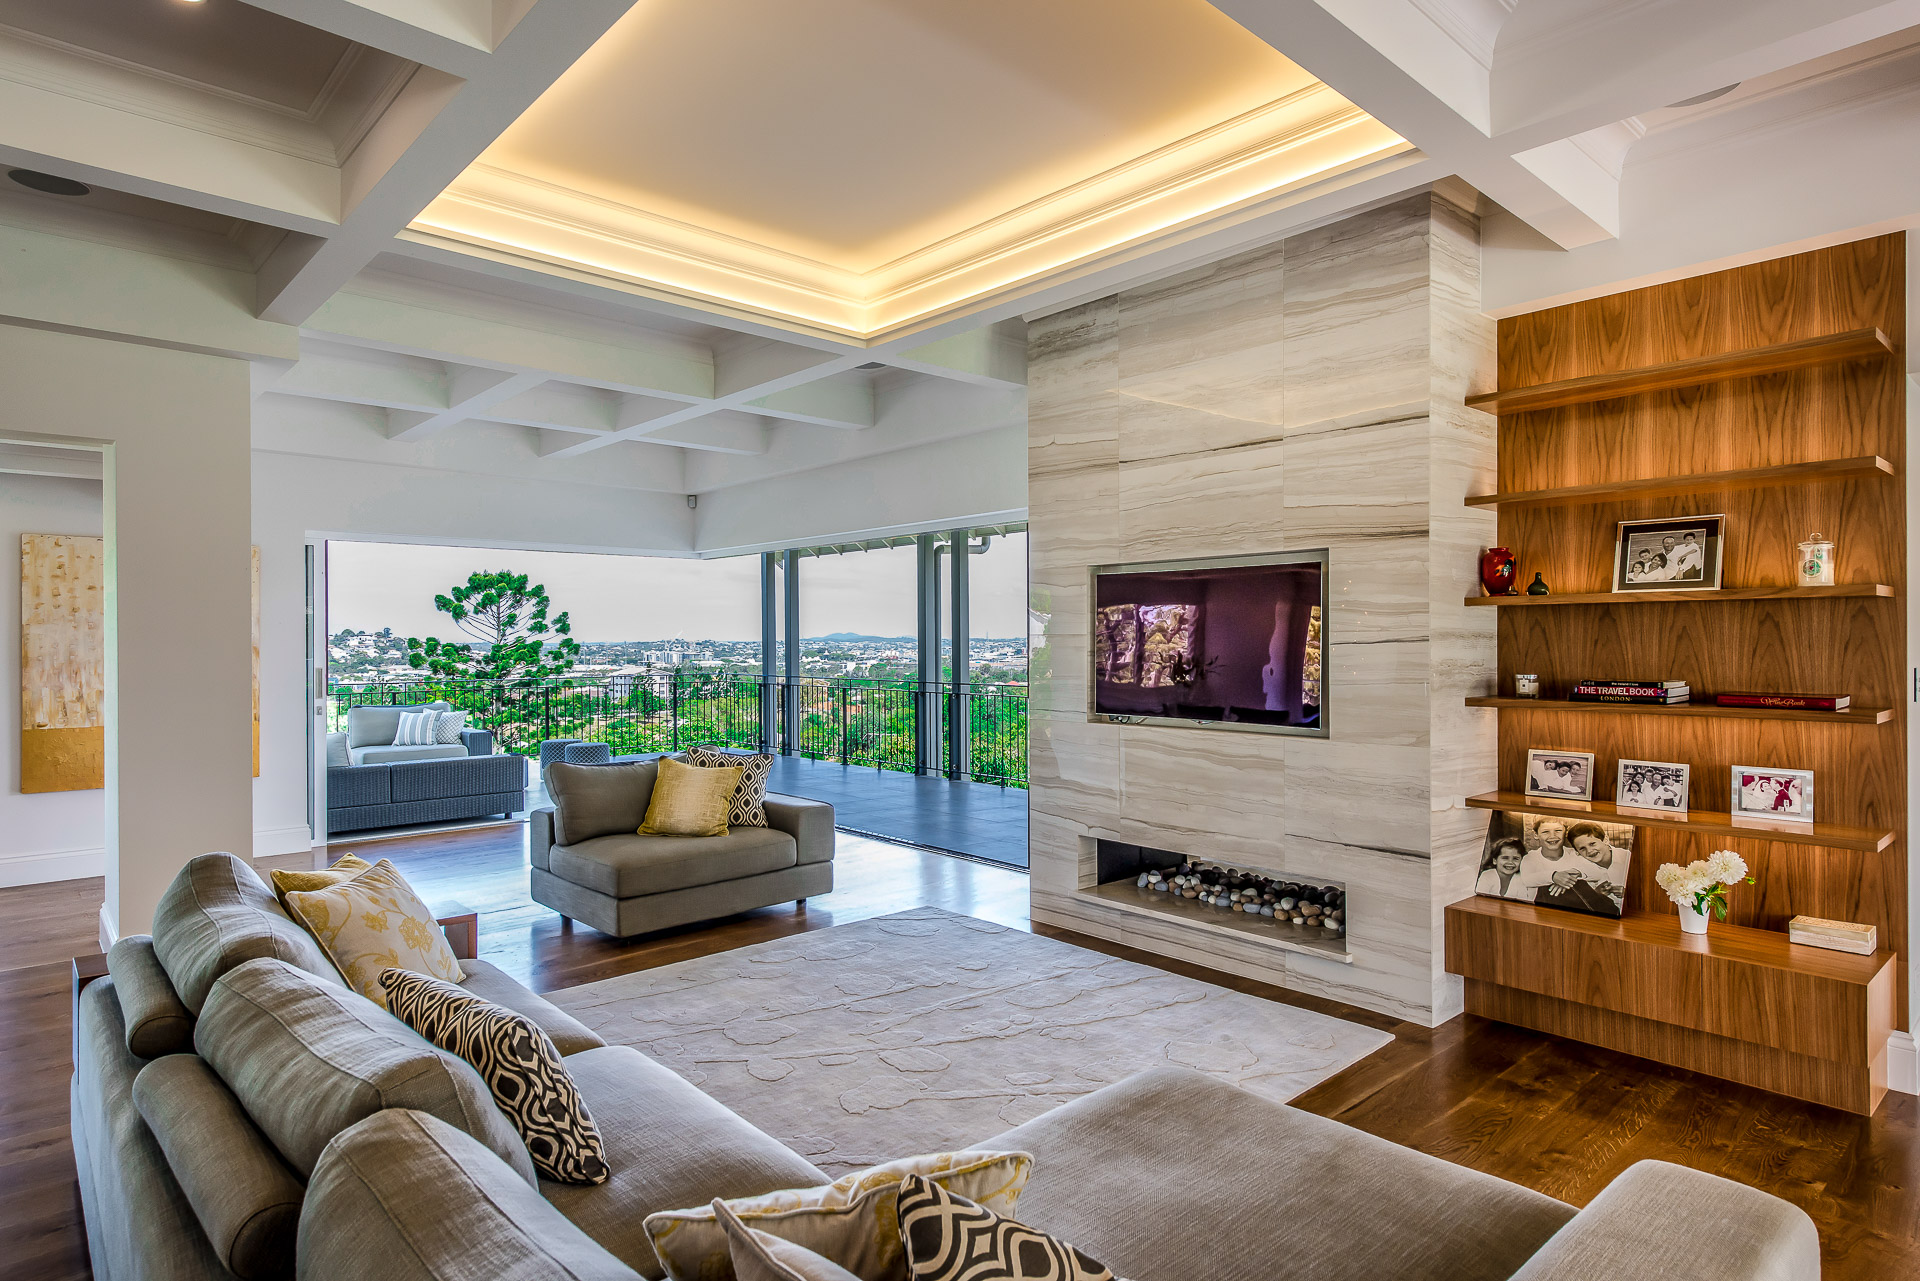 Luxury fireplace, custom book shelves, architecture, luxury interiors, minka joinery, Cowan Constructions, brisbane, queensland